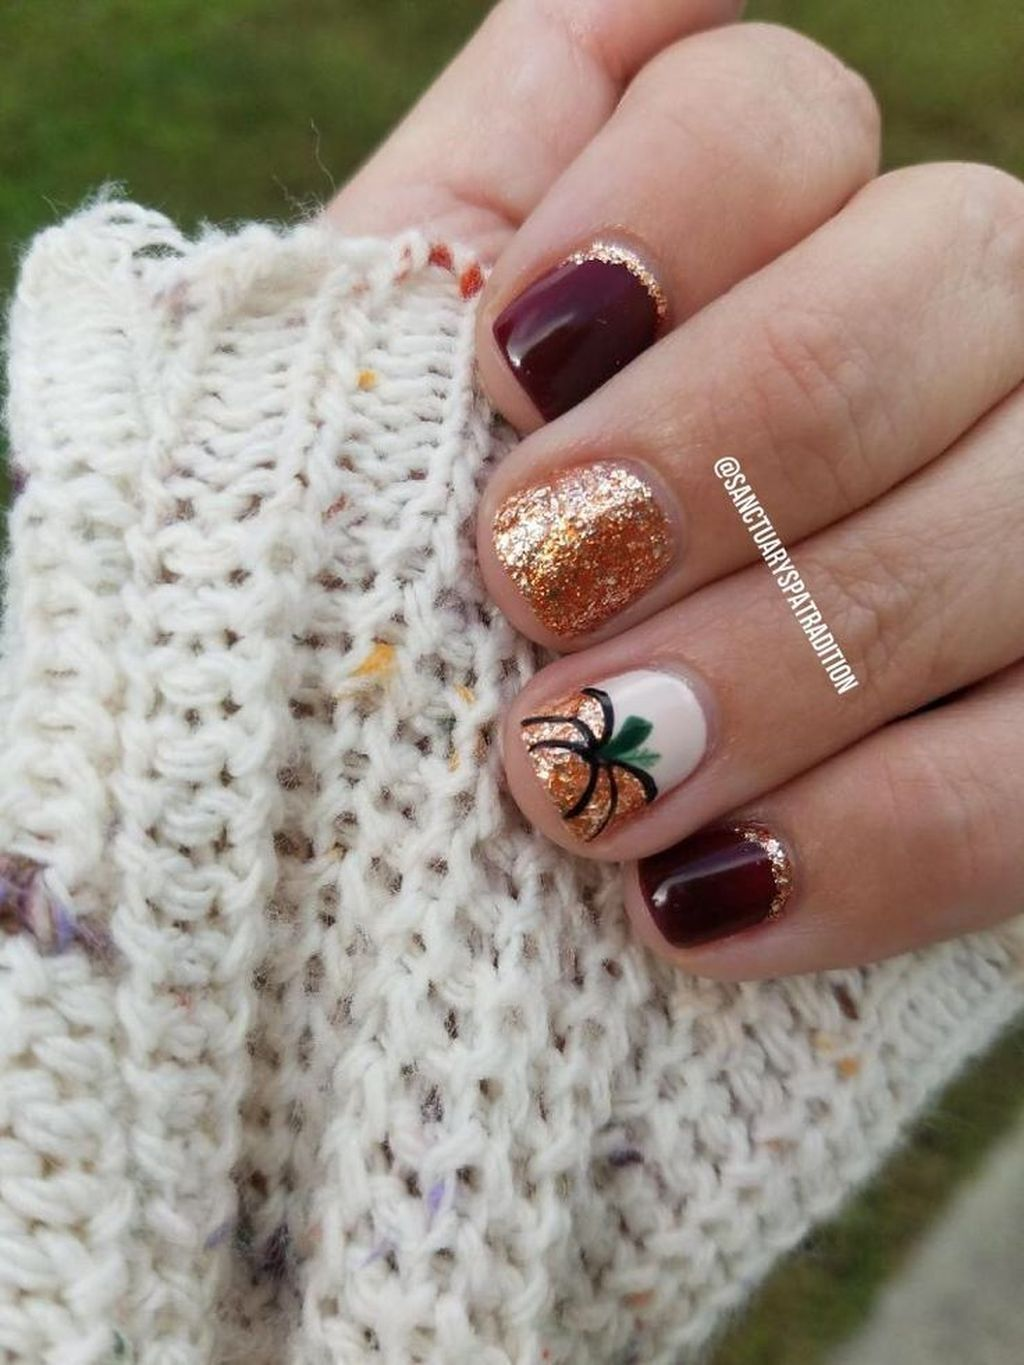 20+ Cool Nail Art Designs Ideas For Fall In 2019 in 2019